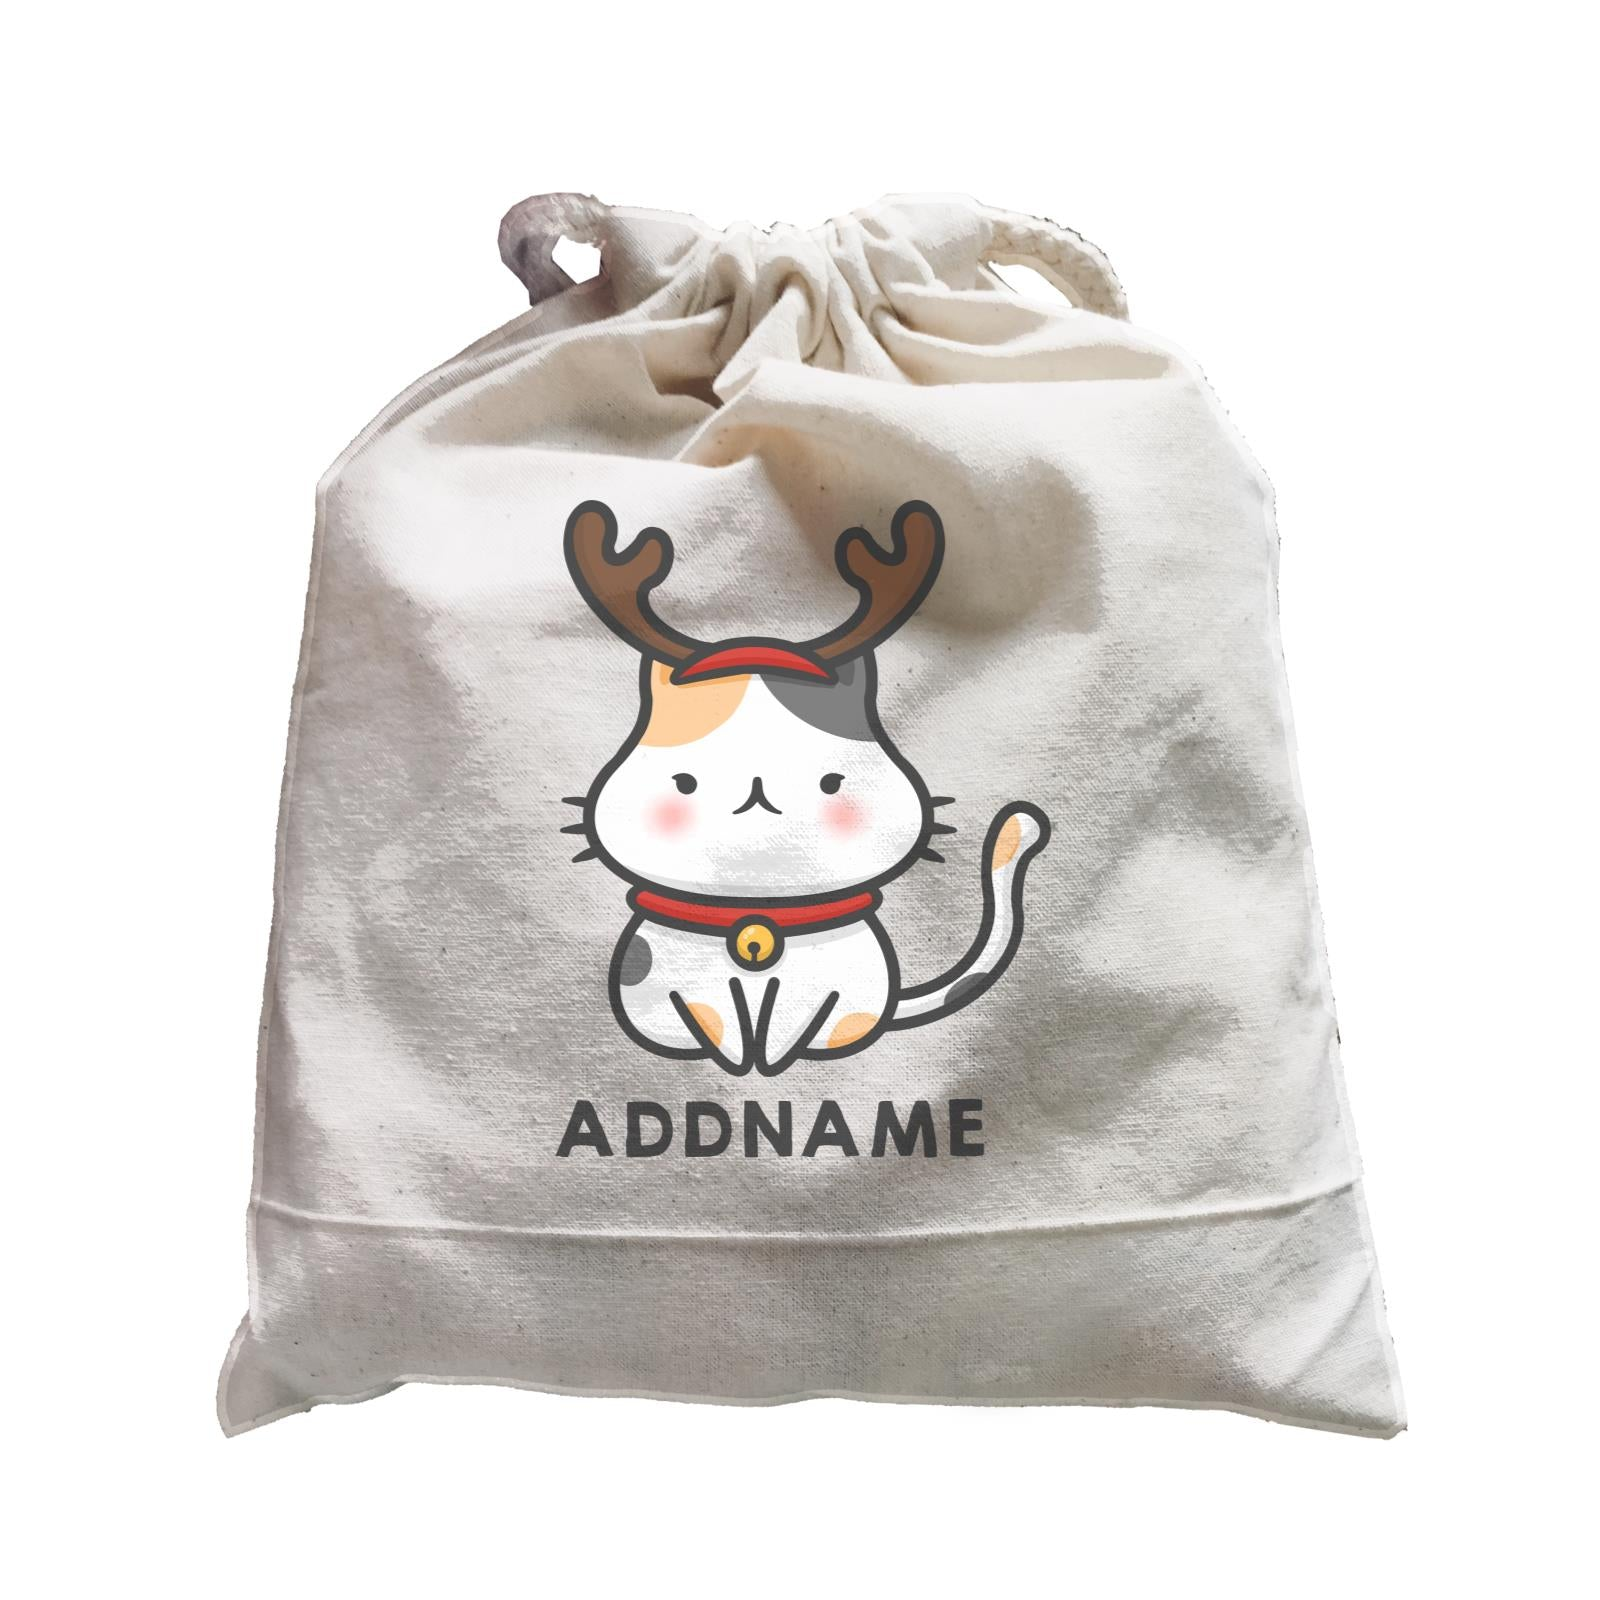 Xmas Cute Cat With Reindeer Antlers Addname Accessories Satchel